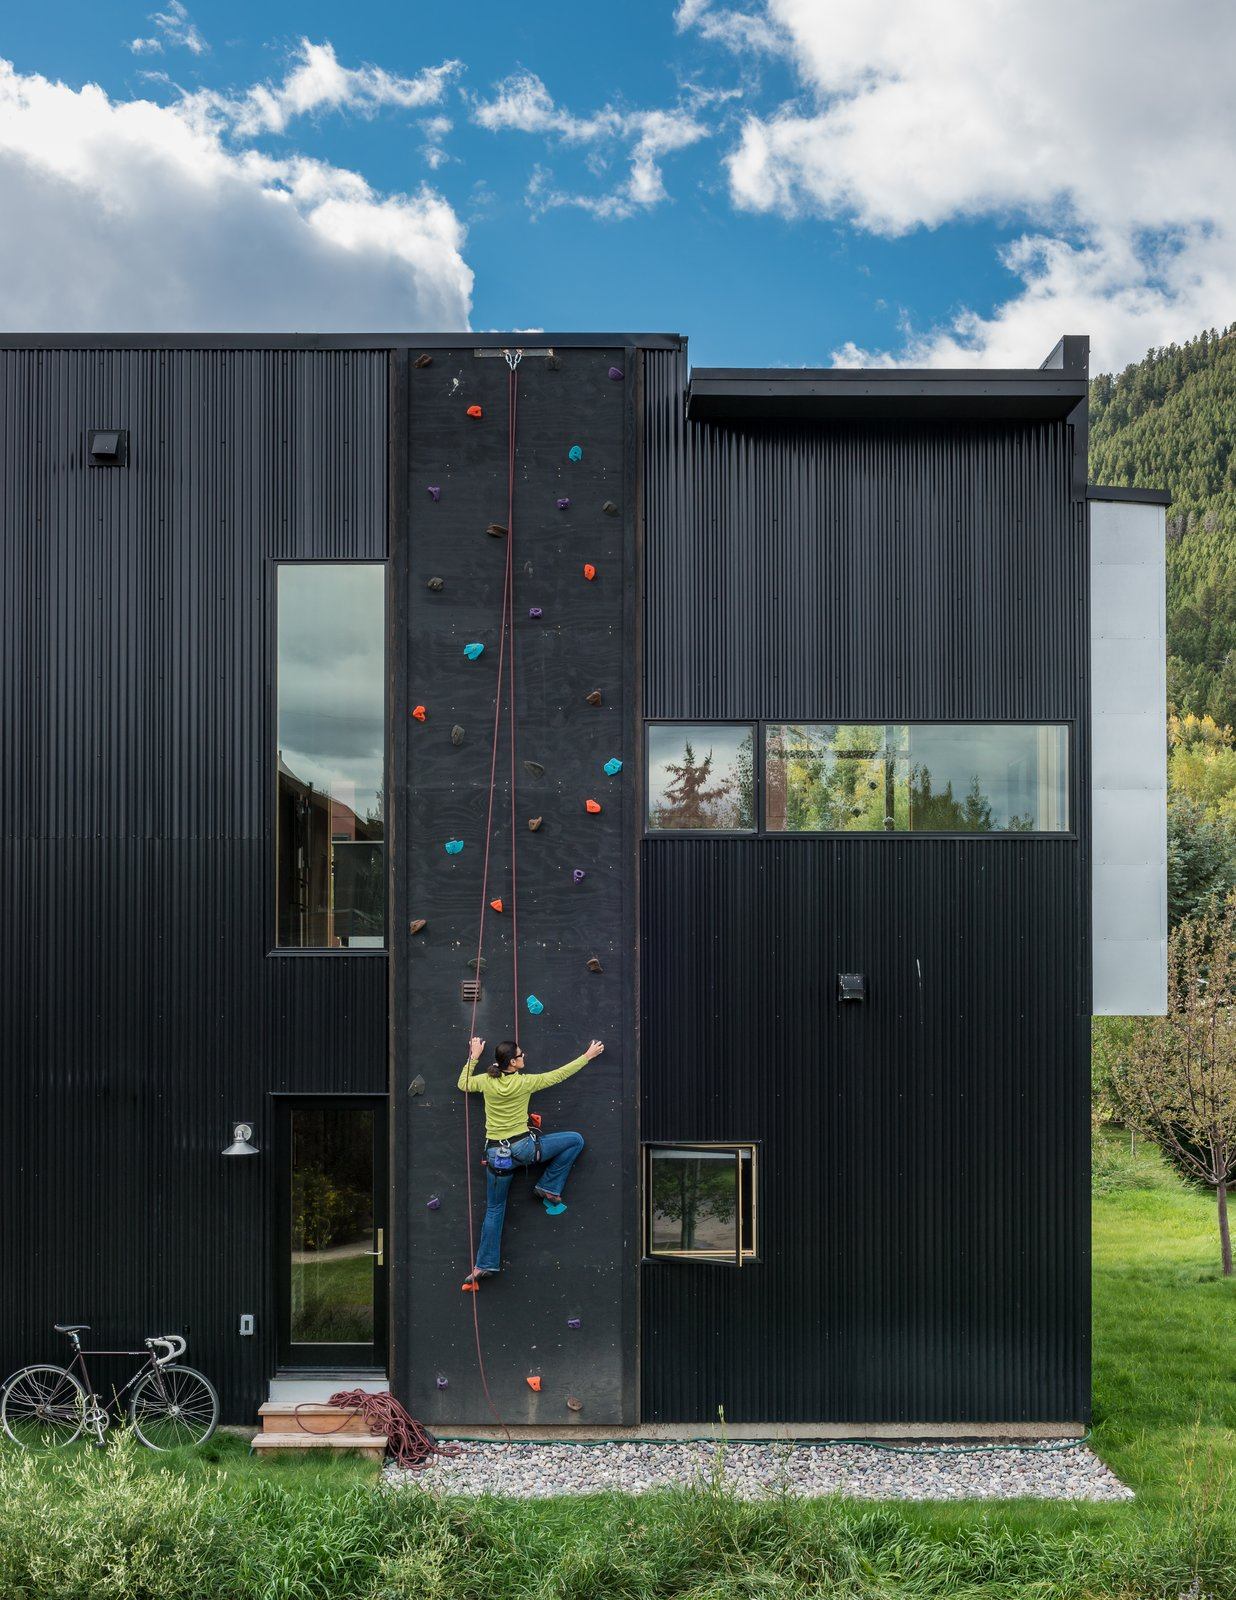 Exterior, House Building Type, Metal Siding Material, and Flat RoofLine Dotted with colorful footholds, a climbing wall covers one side of the home, allowing roof access.  Photos from House of the Week: Budget-Friendly Box Home